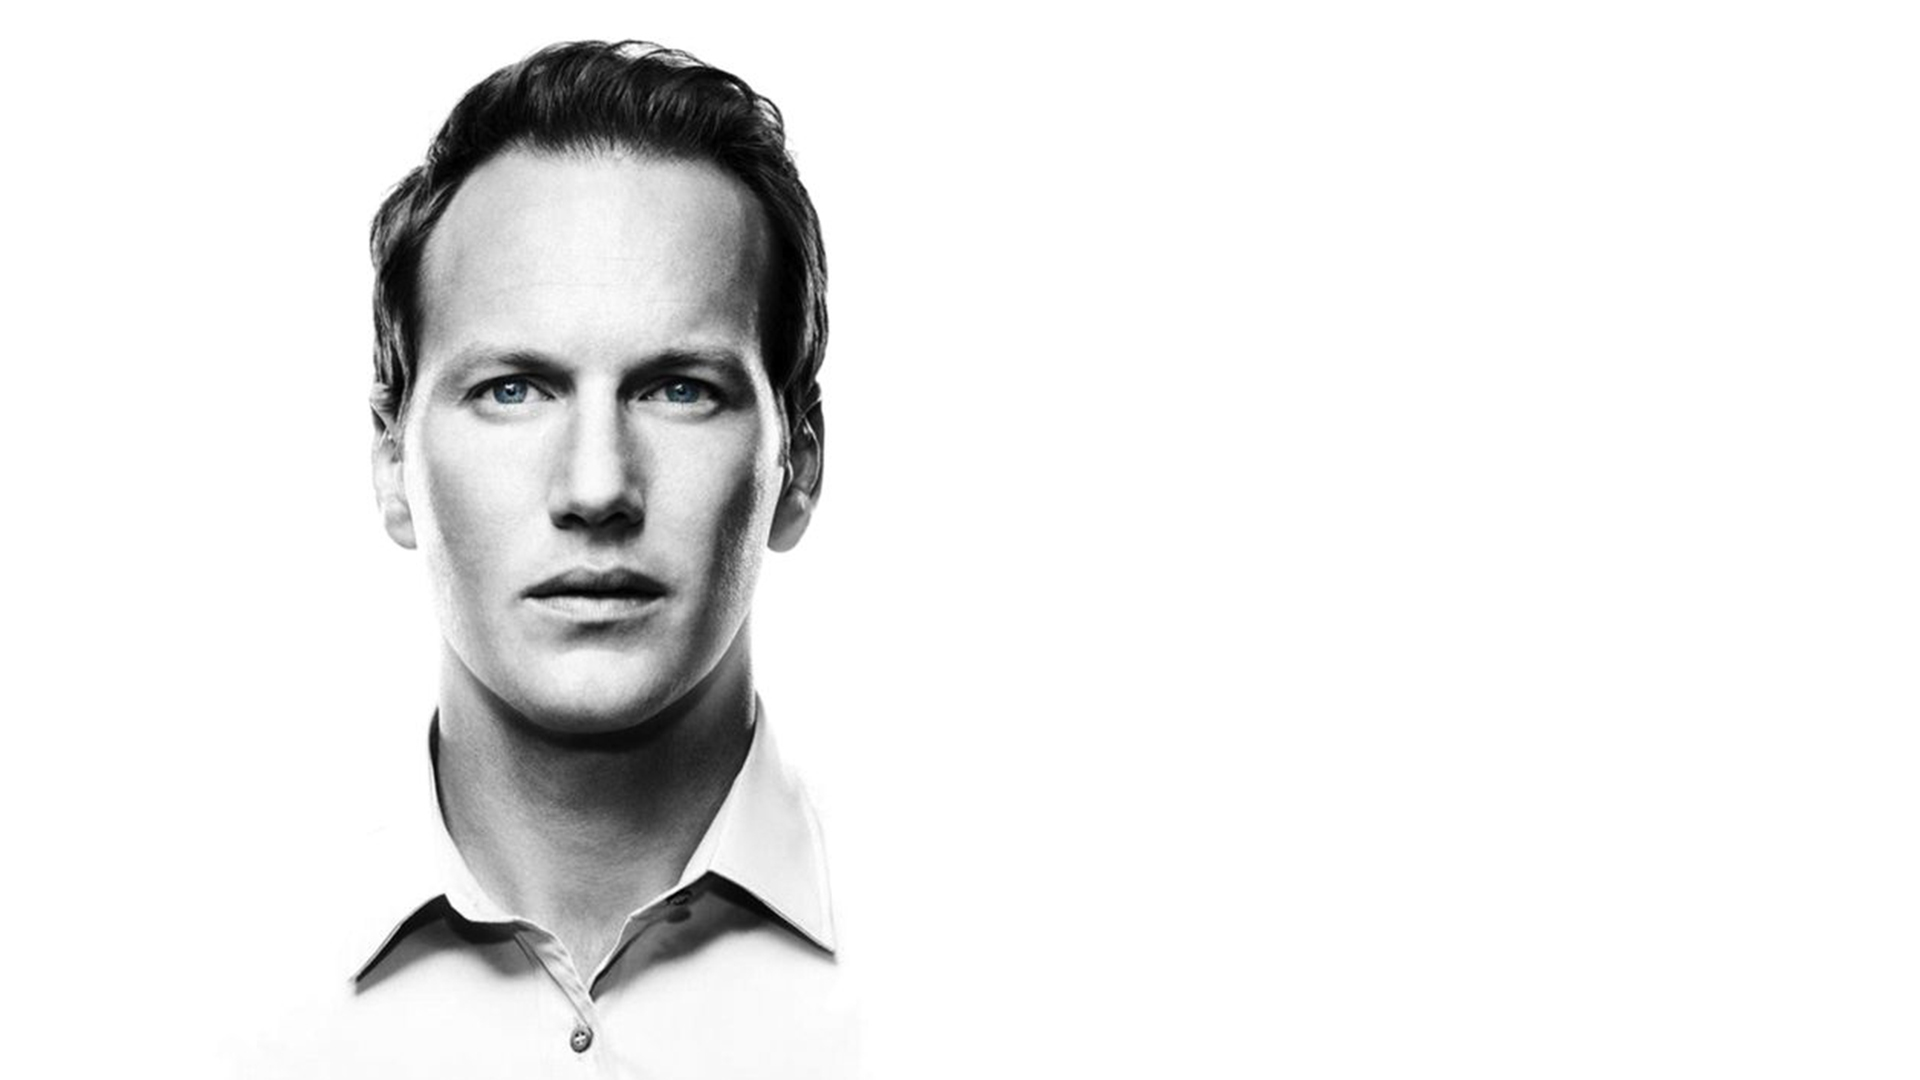 Hd wallpaper widescreen 1080p nature - Patrick Wilson Wallpapers Hd Pictures Images High Quality